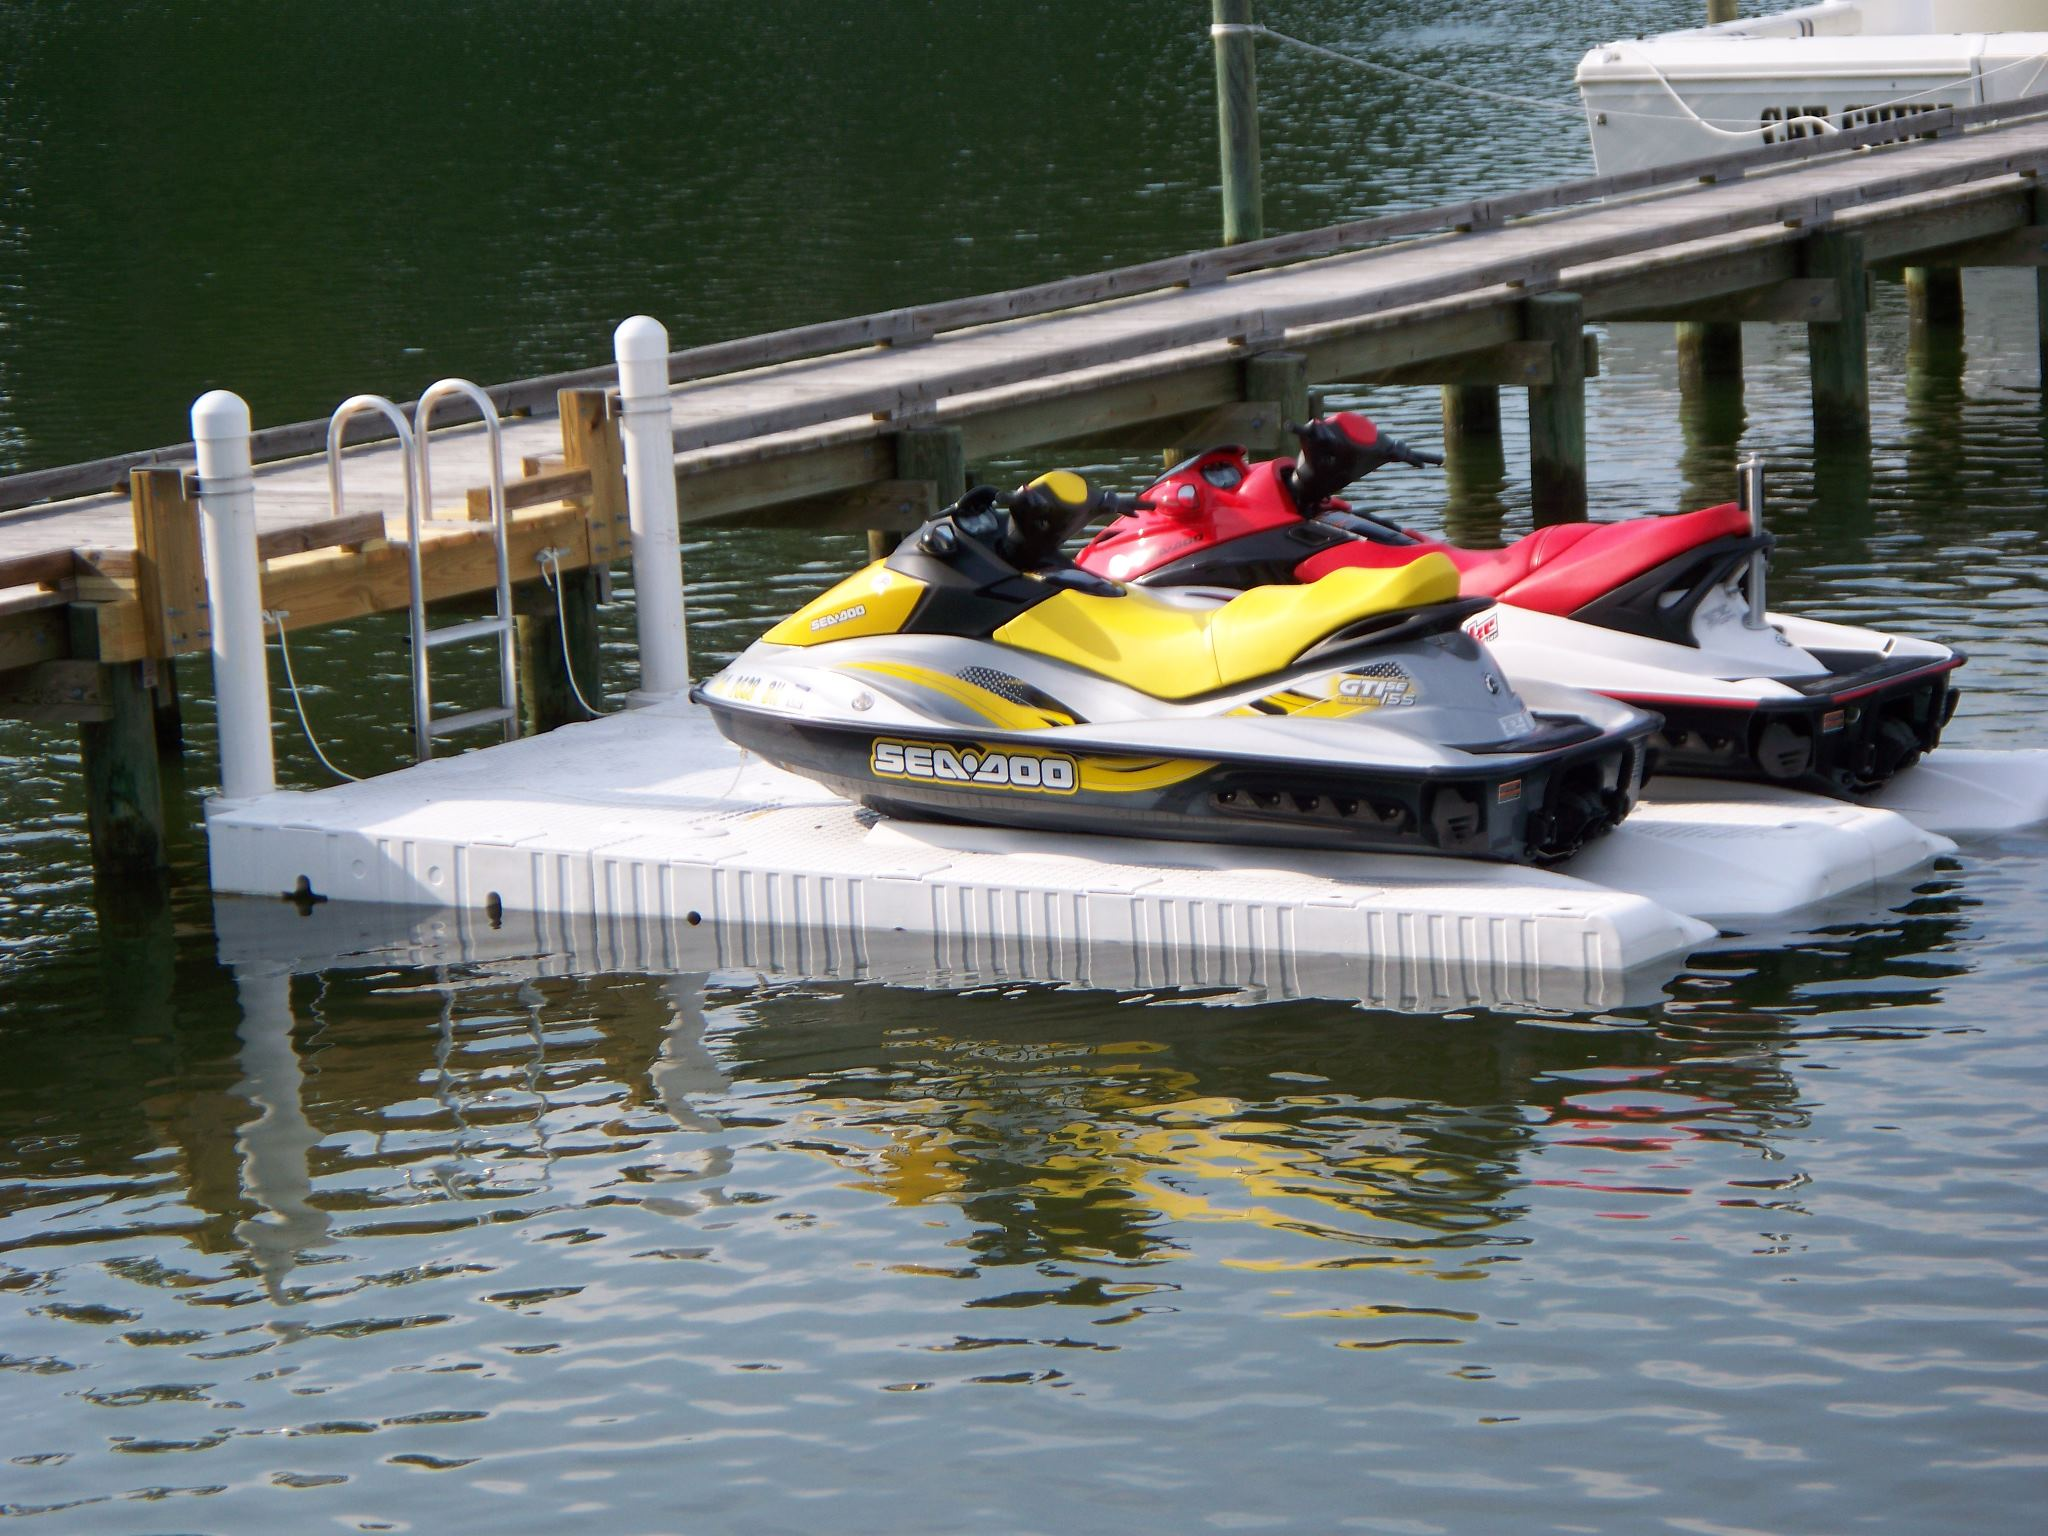 image of the side of a jet-ski